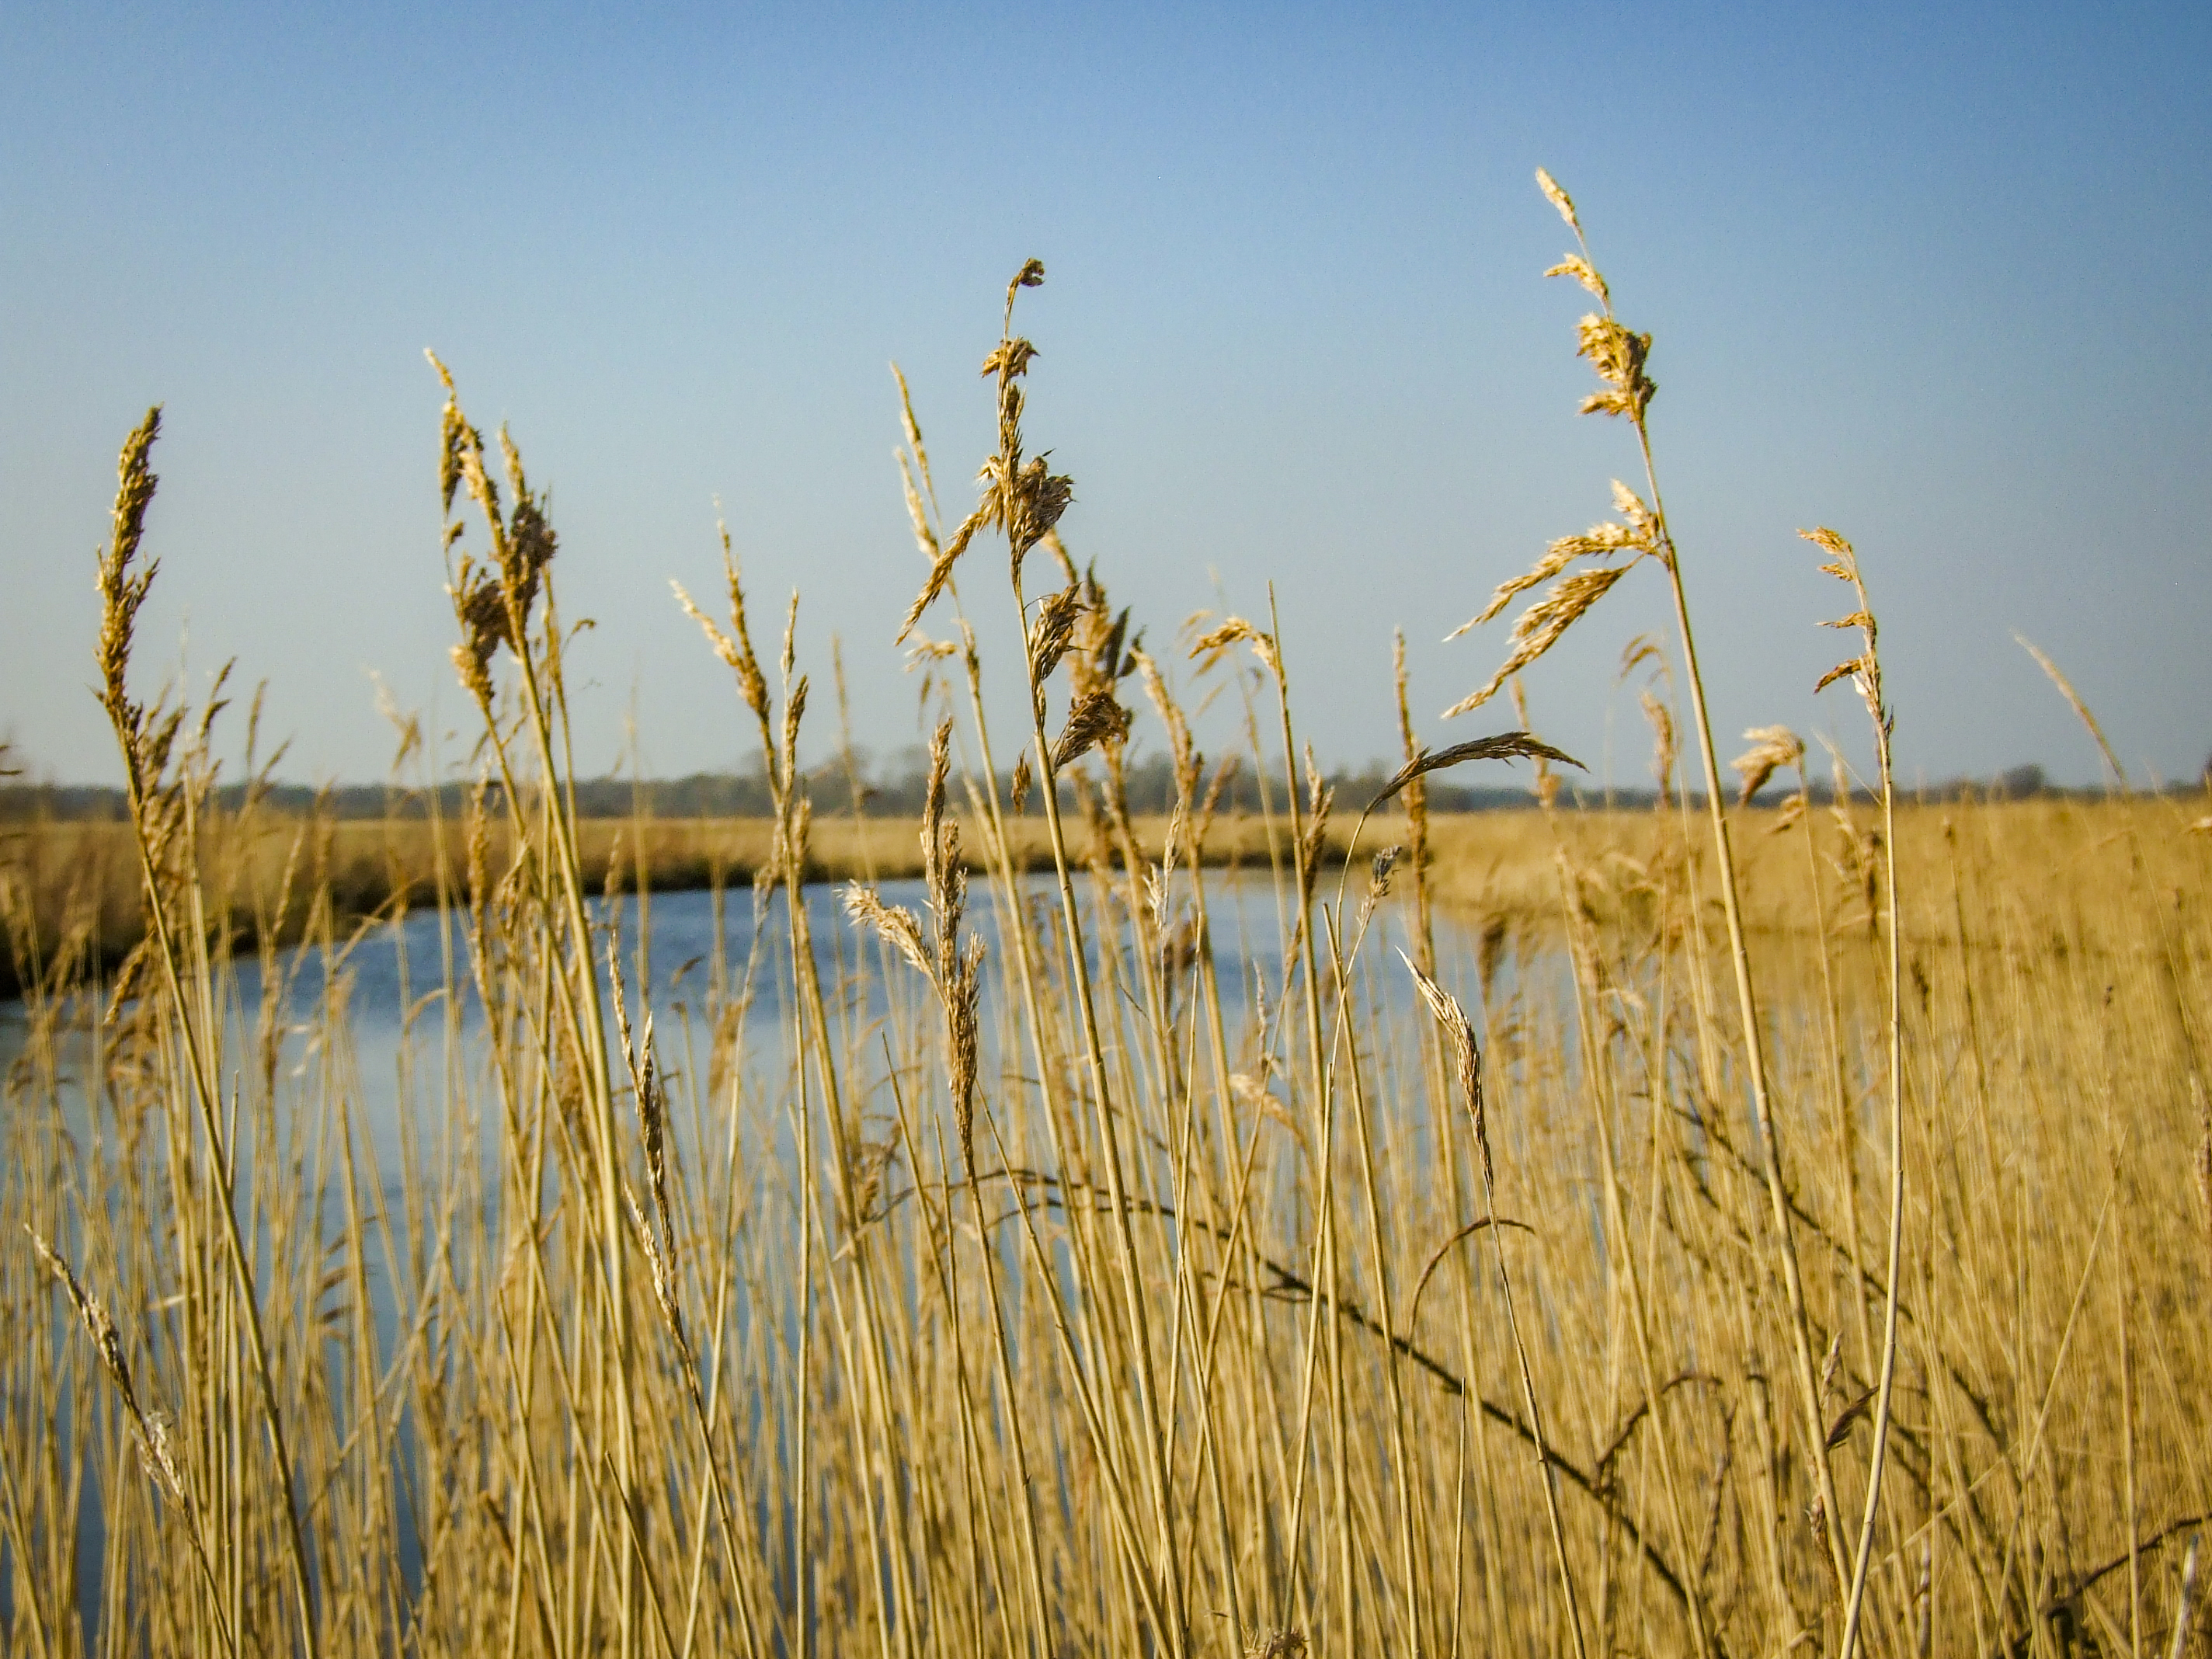 The grass grows tall in the sunshine by the river.jpg